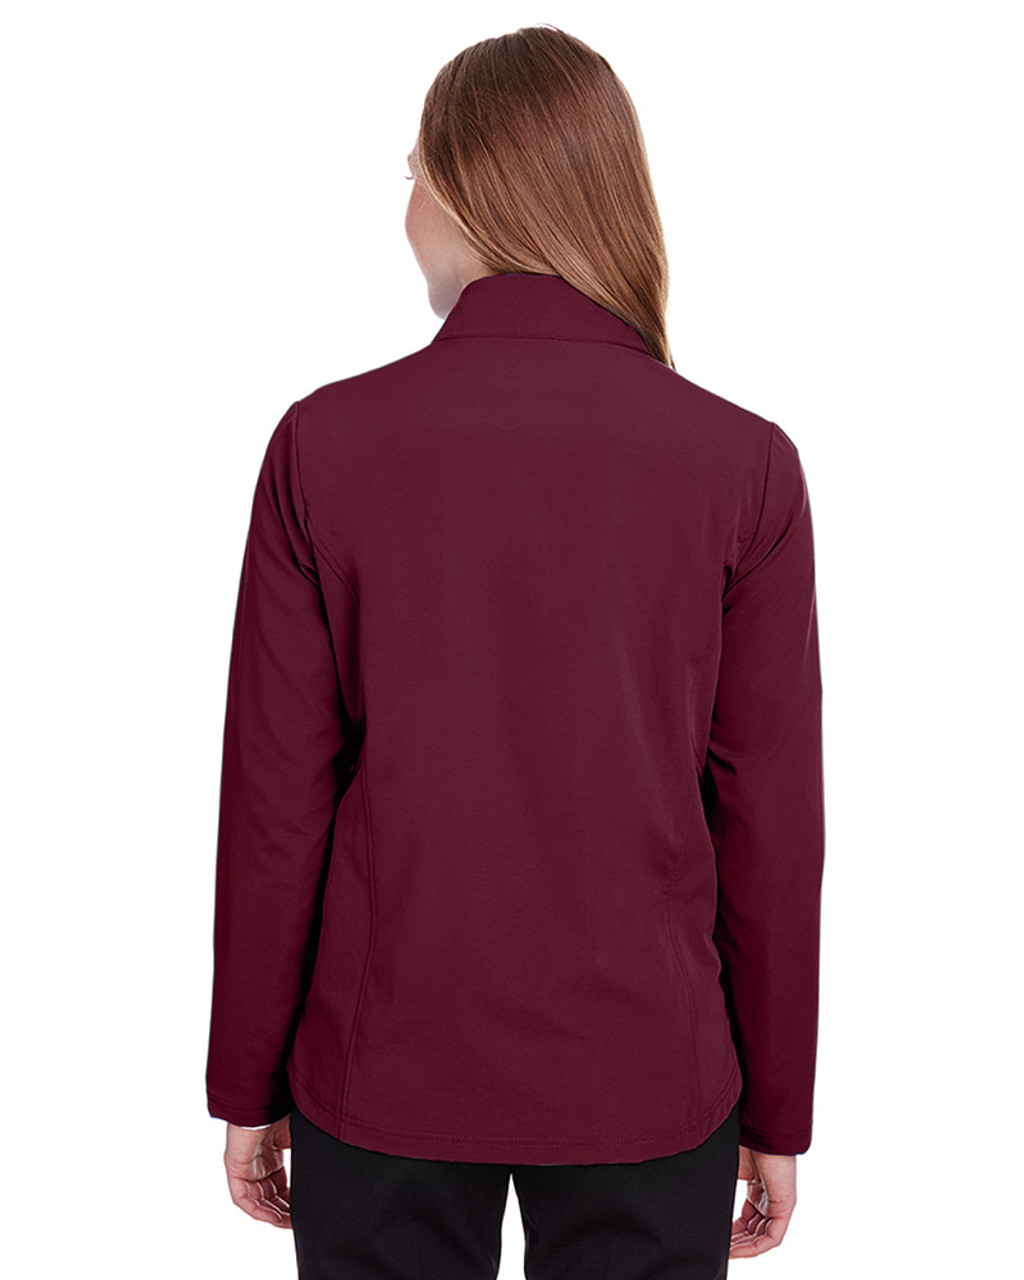 Burgundy/Olympic Blue - NE401W Ash City - North End Ladies' Quest Stretch Quarter-Zip Sweatshirt | Blankclothing.ca